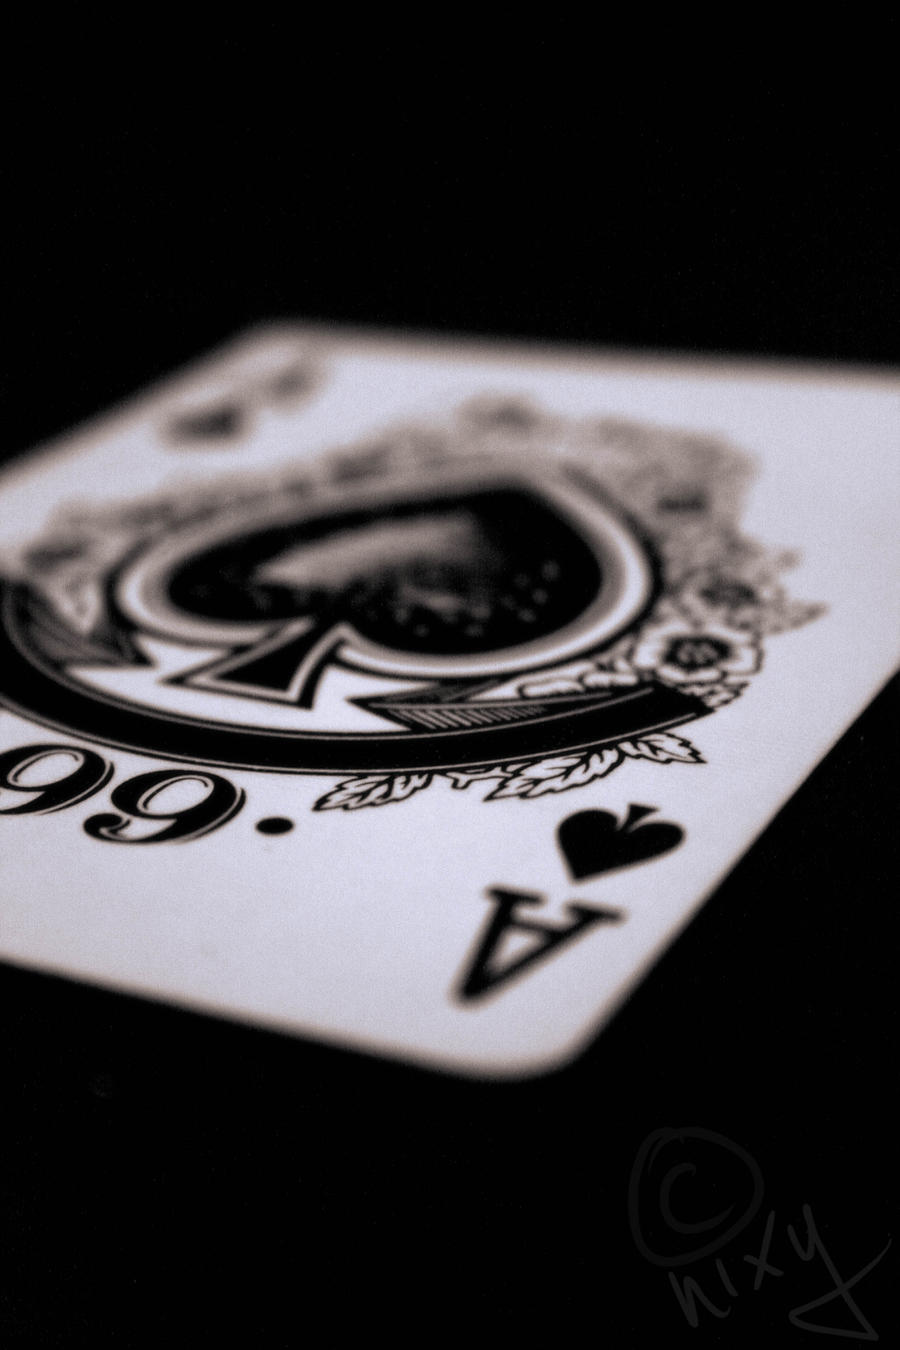 Ace of spades by niixy on deviantart ace of spades by niixy ace of spades by niixy voltagebd Images